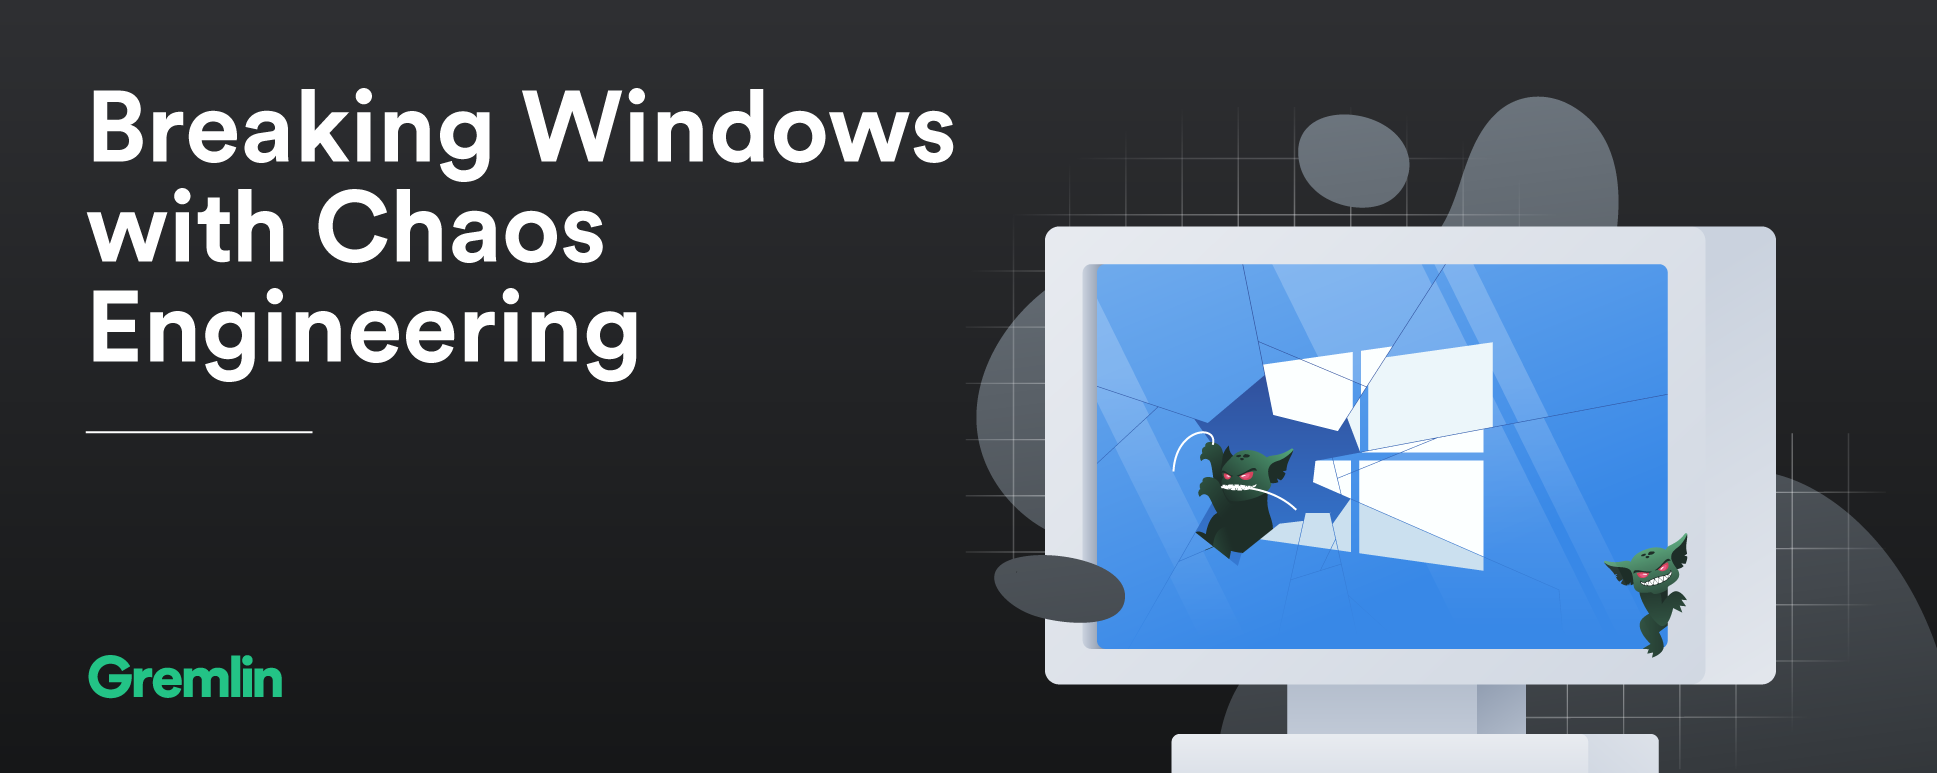 Breaking Windows with Chaos Engineering